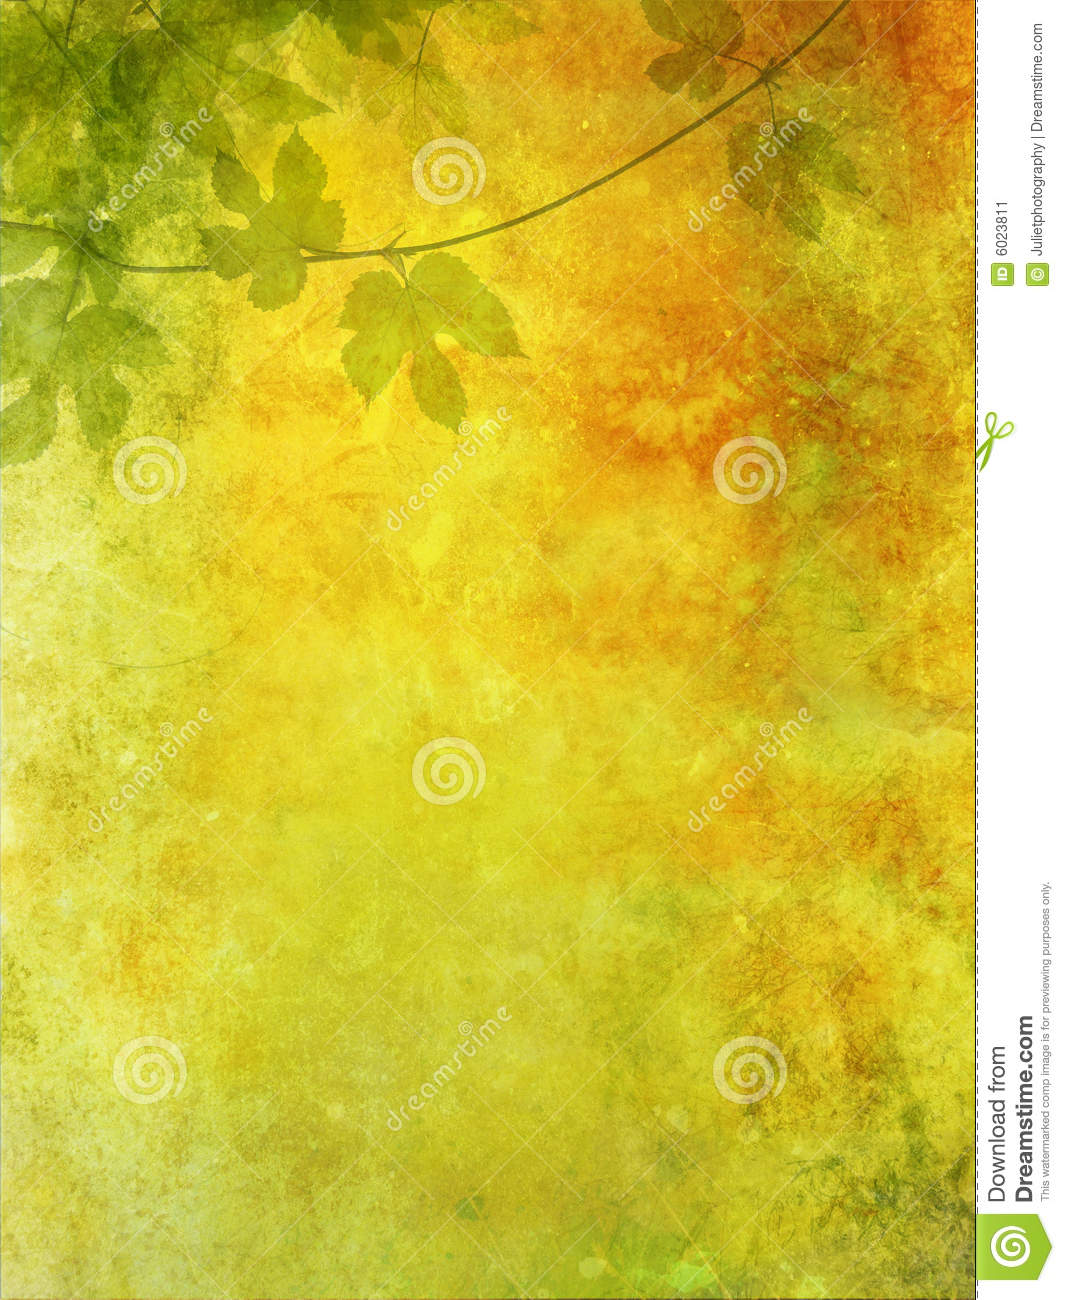 Grunge background with grape leaves